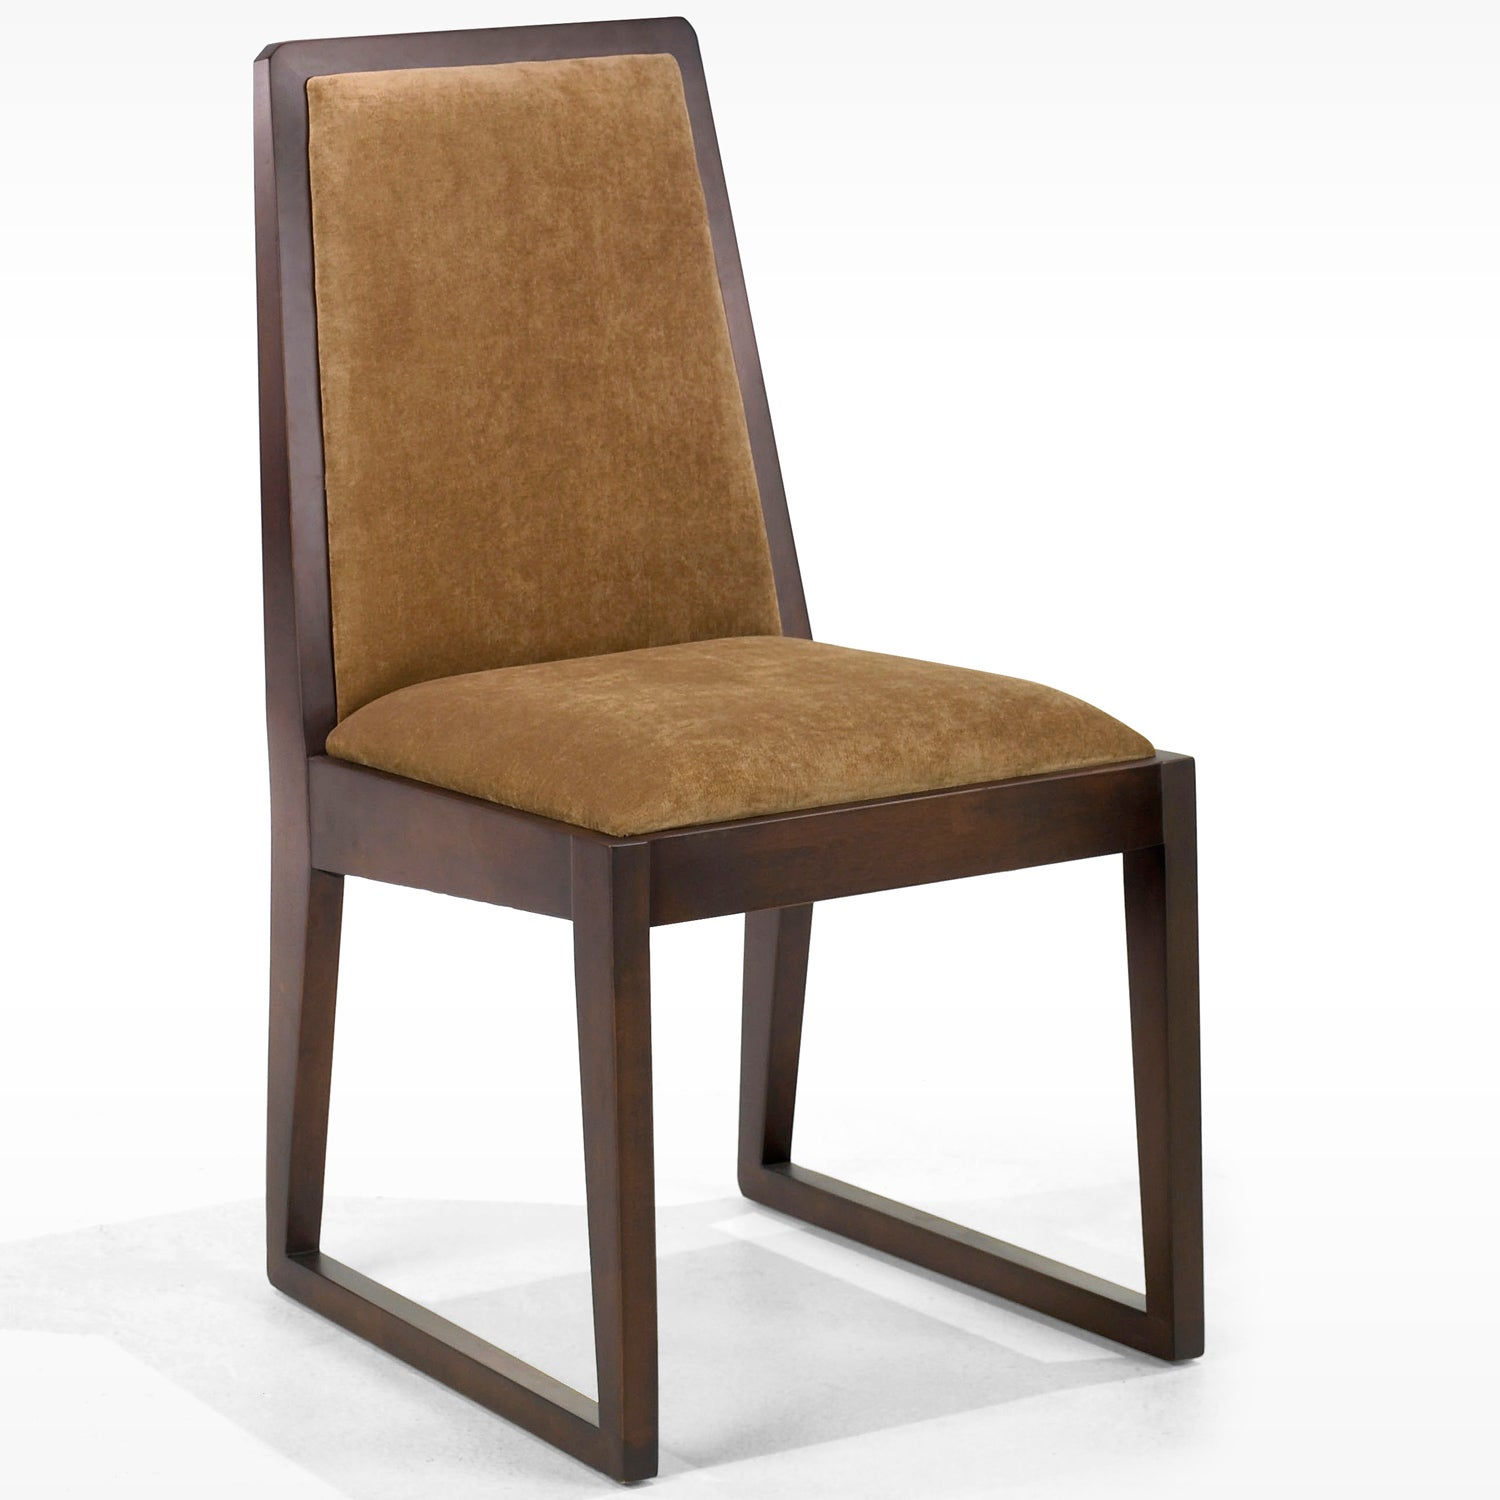 Bixby Tobacco Espresso Side Chair (Set of 2)